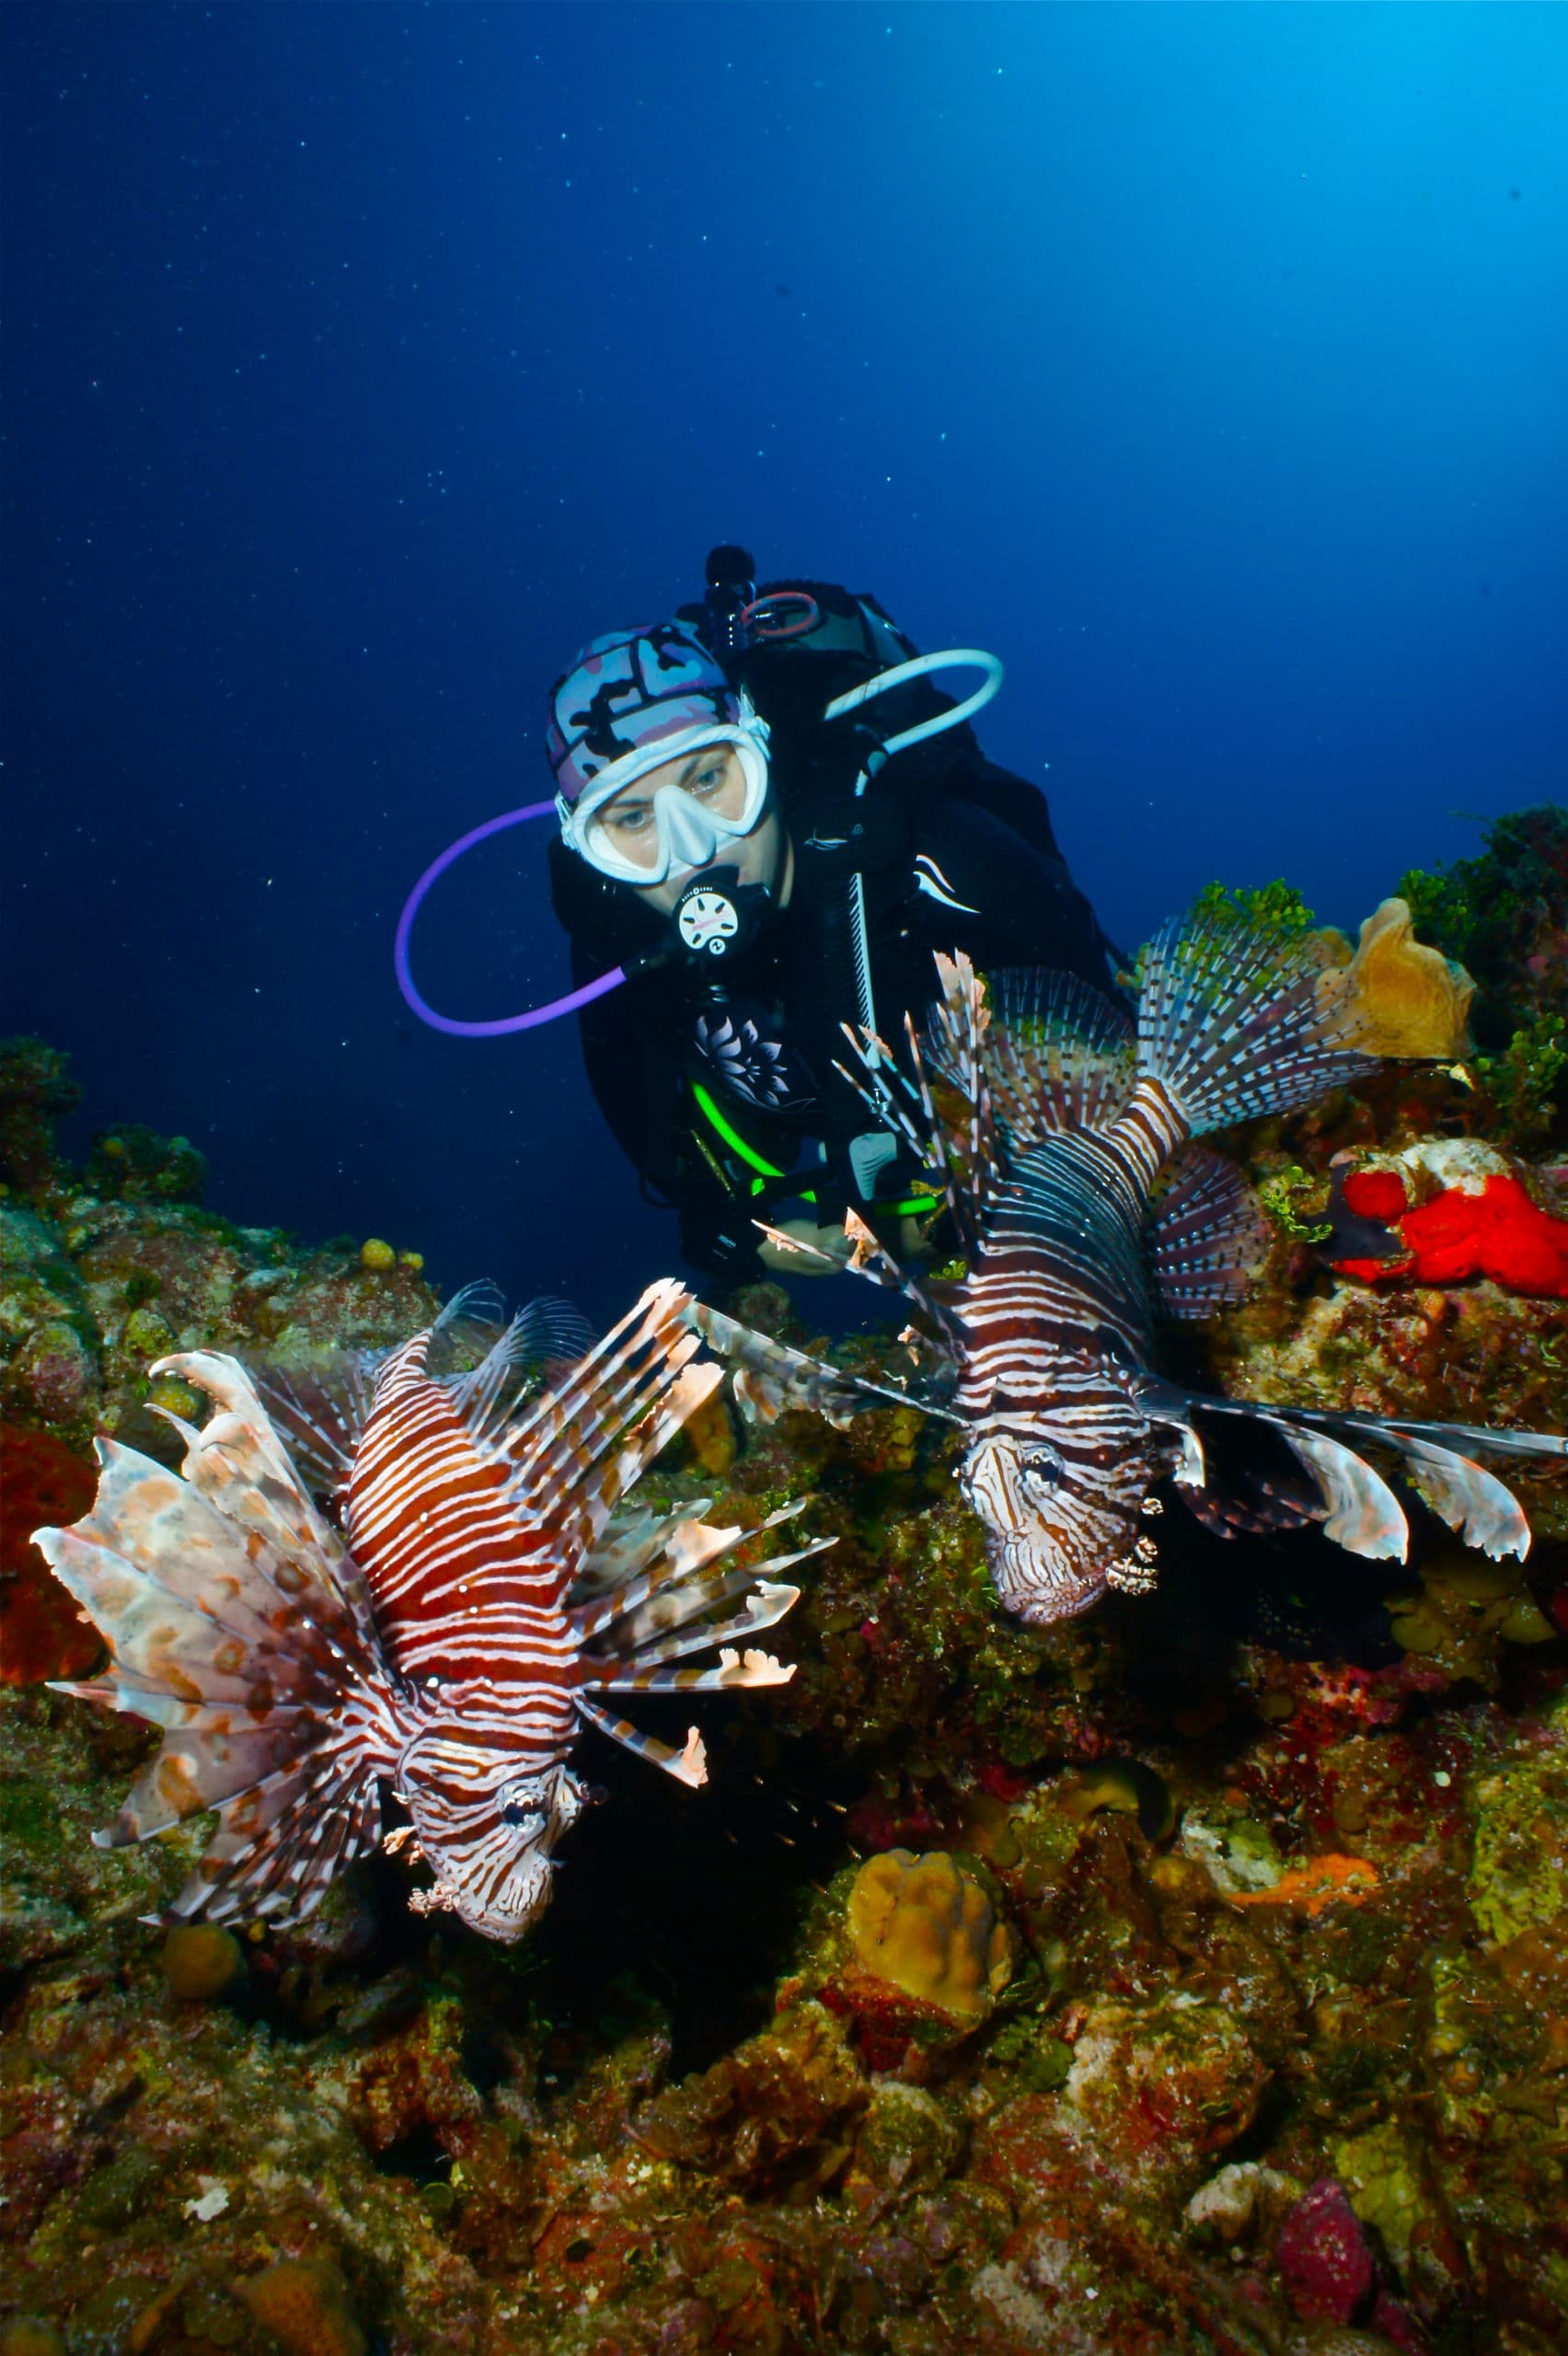 Lionfish have invaded the Caribbean